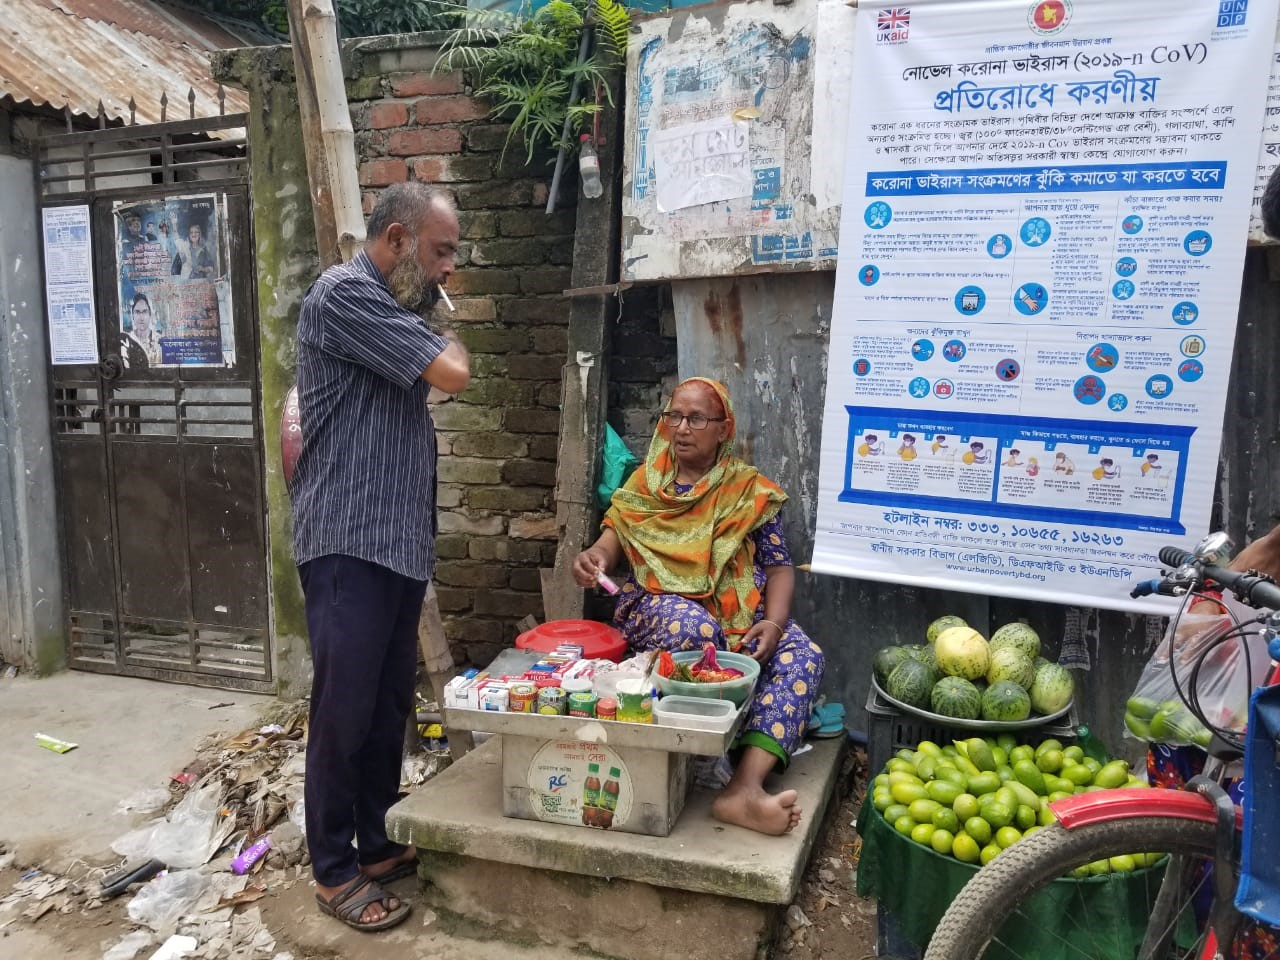 Making ends meet during COVID-19: Life in Korail Slum